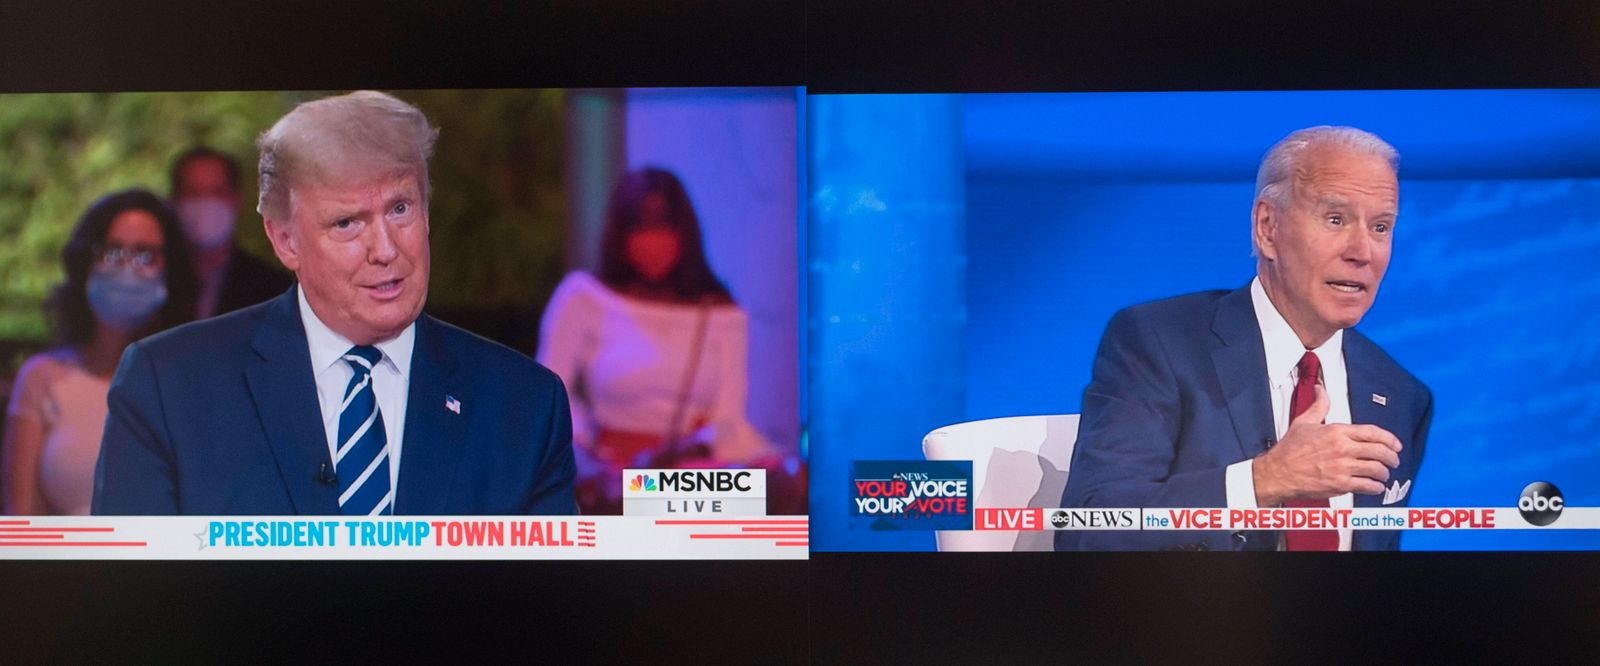 October 15, 2020, New York, New York, USA - A screen grab from the ABC and MSNBC broadcasts of dueling town halls featu